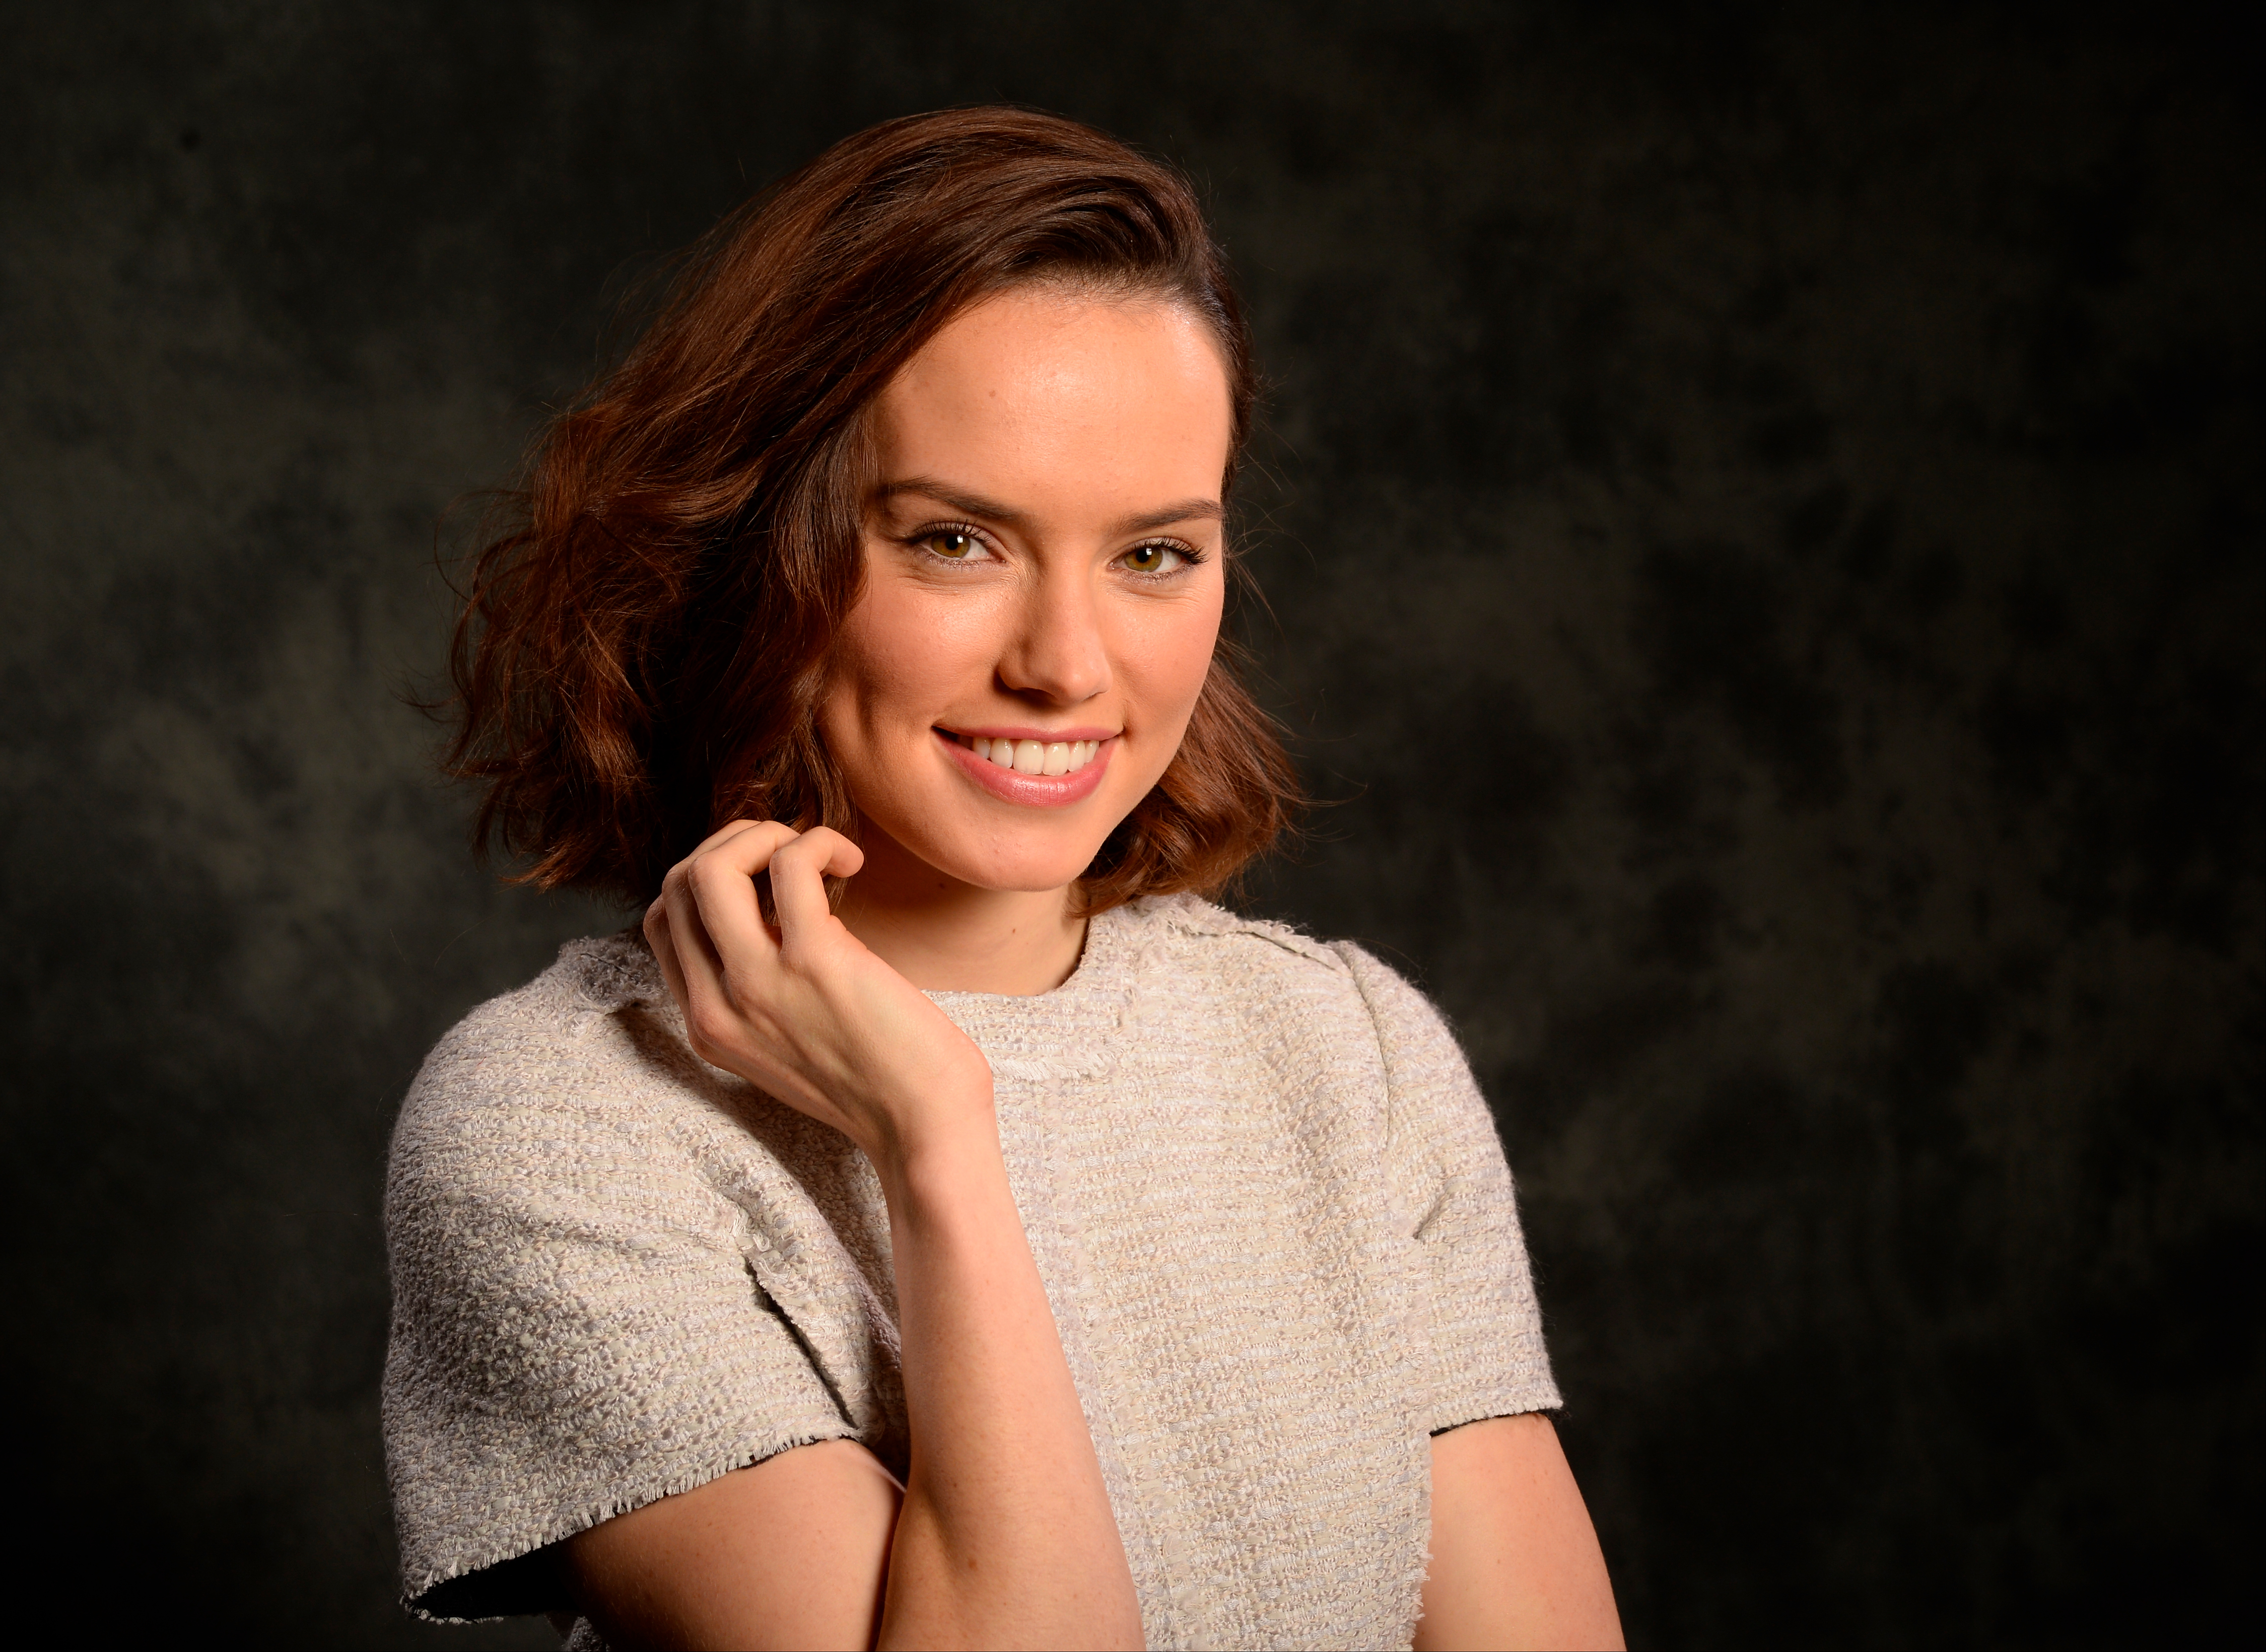 4499x3280 - Daisy Ridley Wallpapers 7